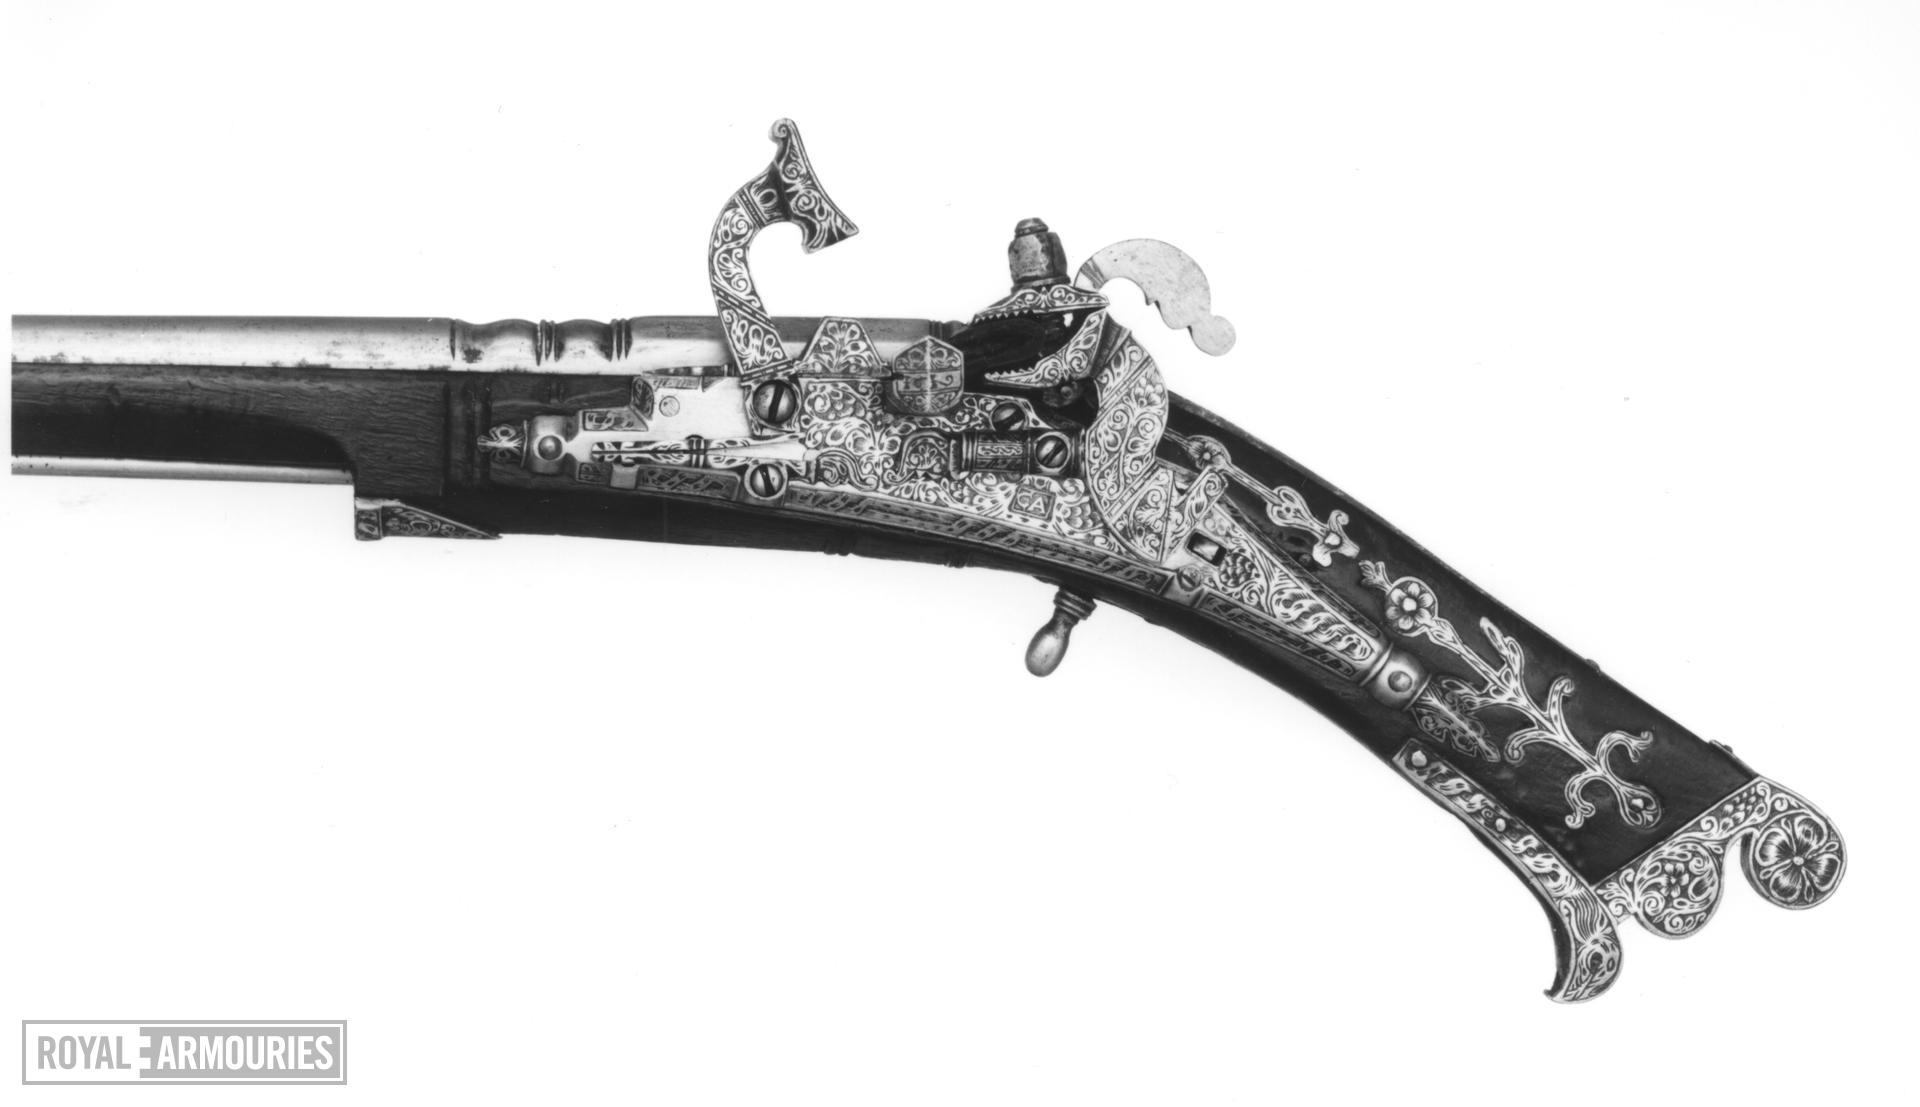 Snaphaunce muzzle-loading pistol - By Allison May have belonged to Prince Charles (later Charles I).